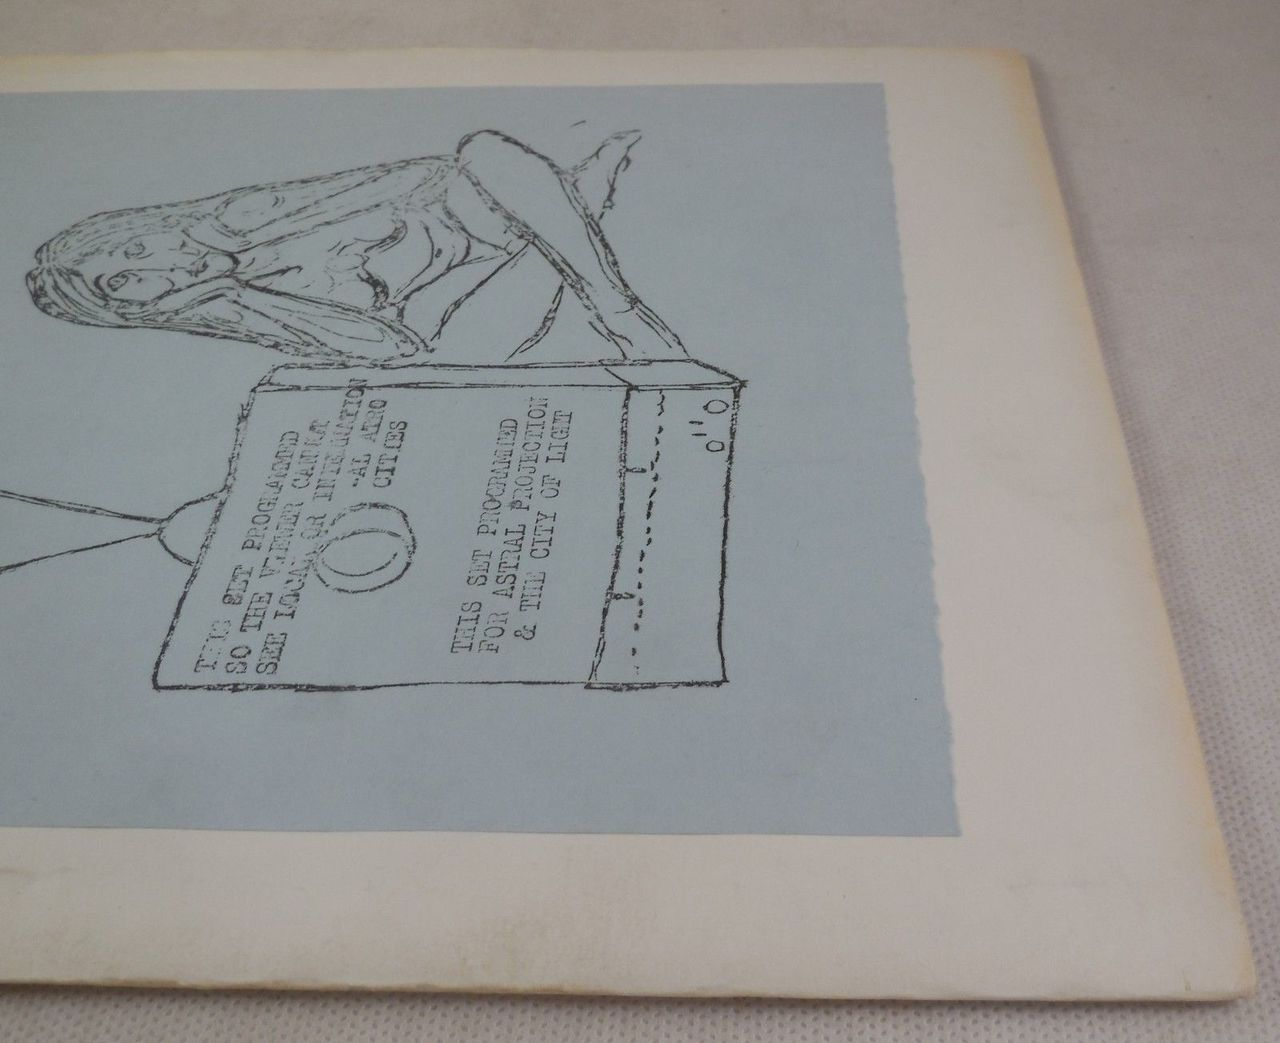 SUBURBAN MONASTERY DEATH POEM, D.A. Levy - 1968 Mimeograph Vintage Poetry